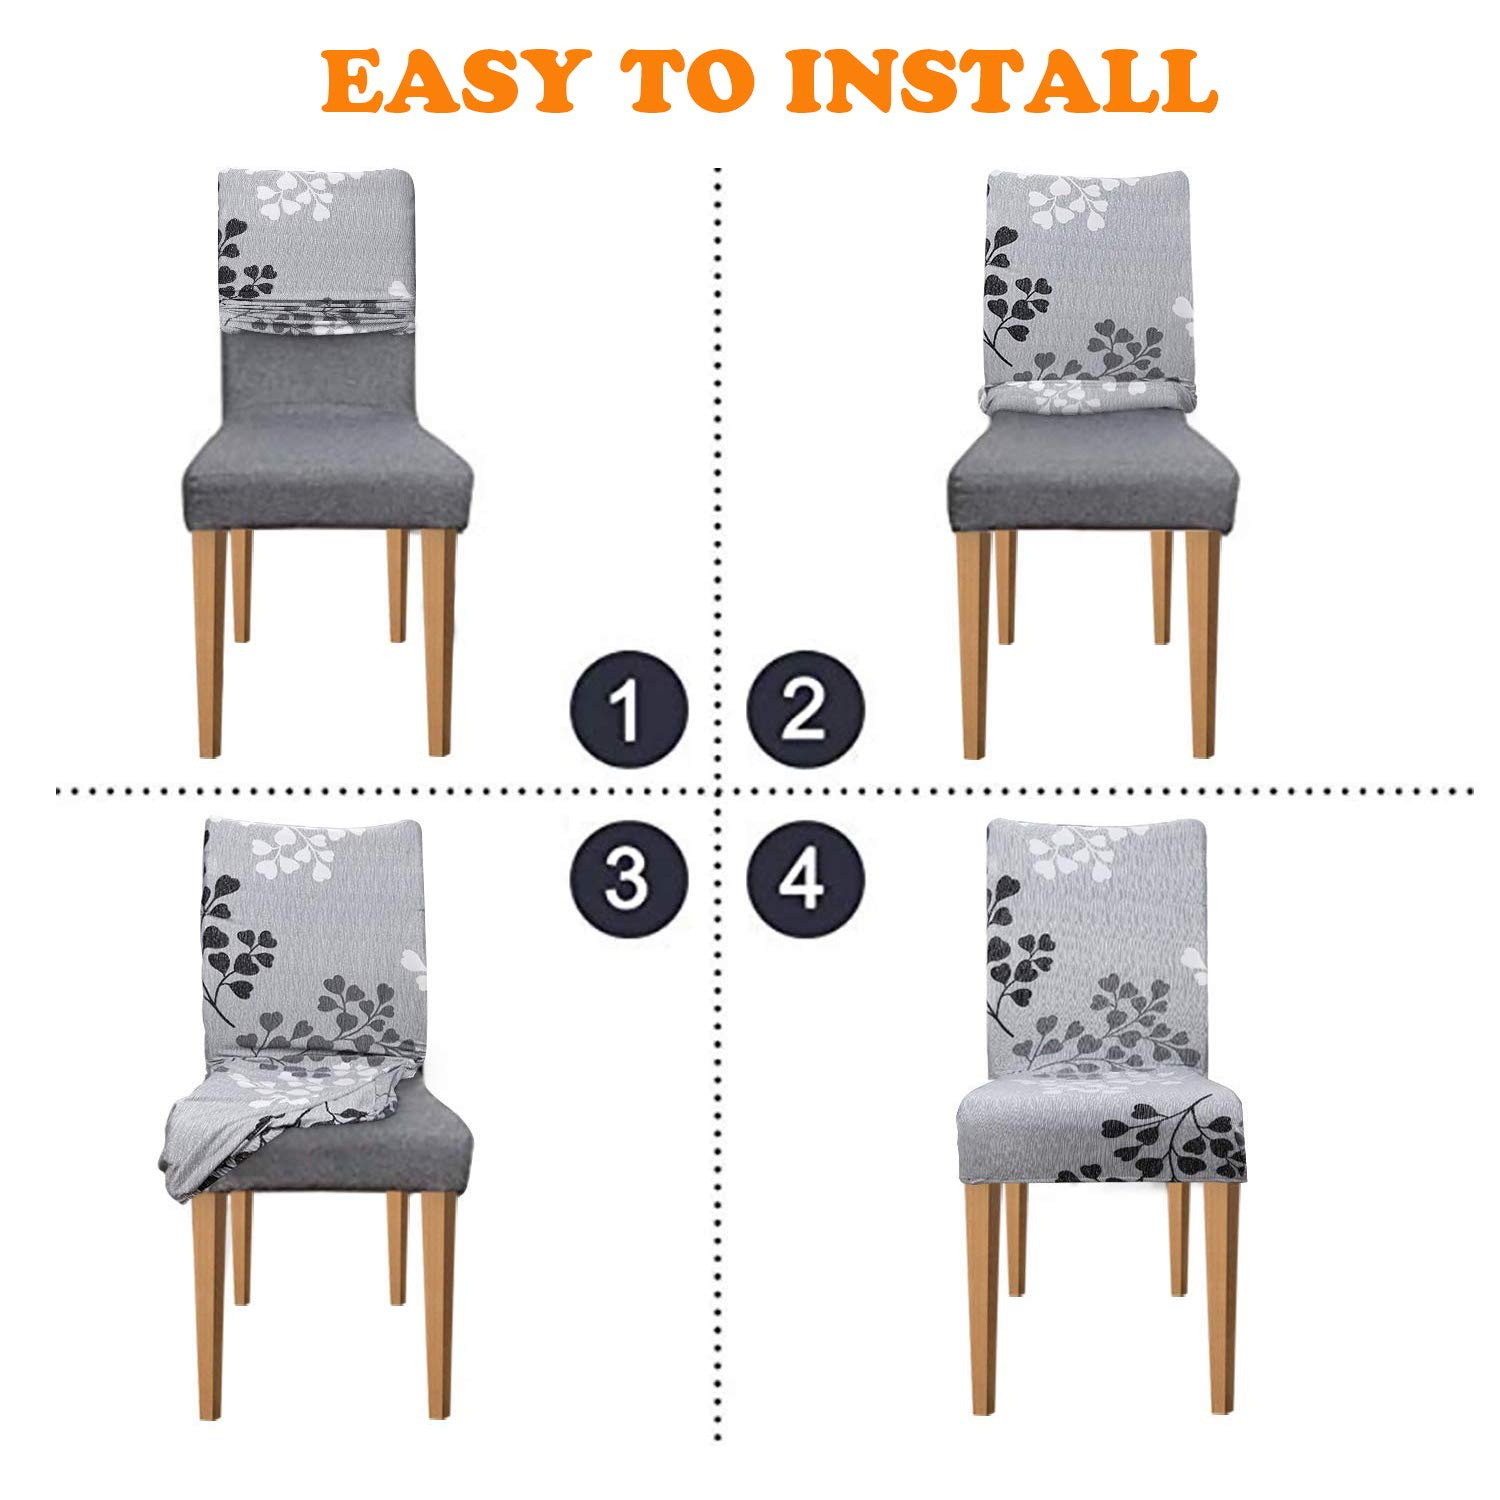 Xflyee Stretch Dining Room Chair Covers Jacquard Removable Washable Kitchen Parson Chair Slipcovers Set of 4 (A, 4 Pack) by Xflyee (Image #5)